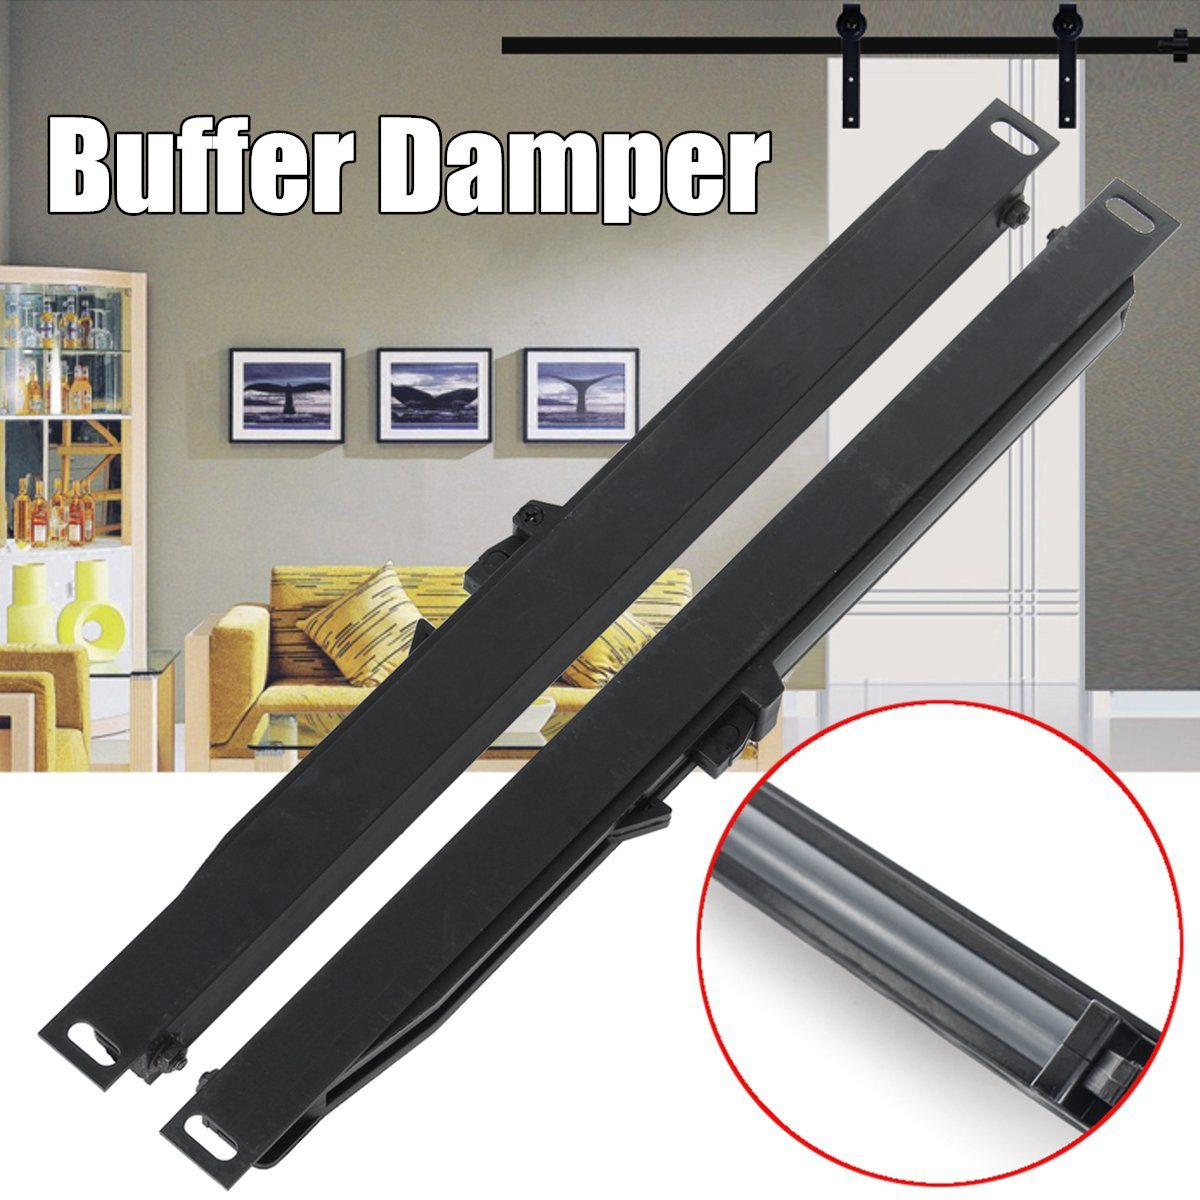 Any Side Sliding Barn Door Hardware Soft Close Drawer Slide Track Buffer Damper 4pcs naierdi c serie hinge stainless steel door hydraulic hinges damper buffer soft close for cabinet kitchen furniture hardware